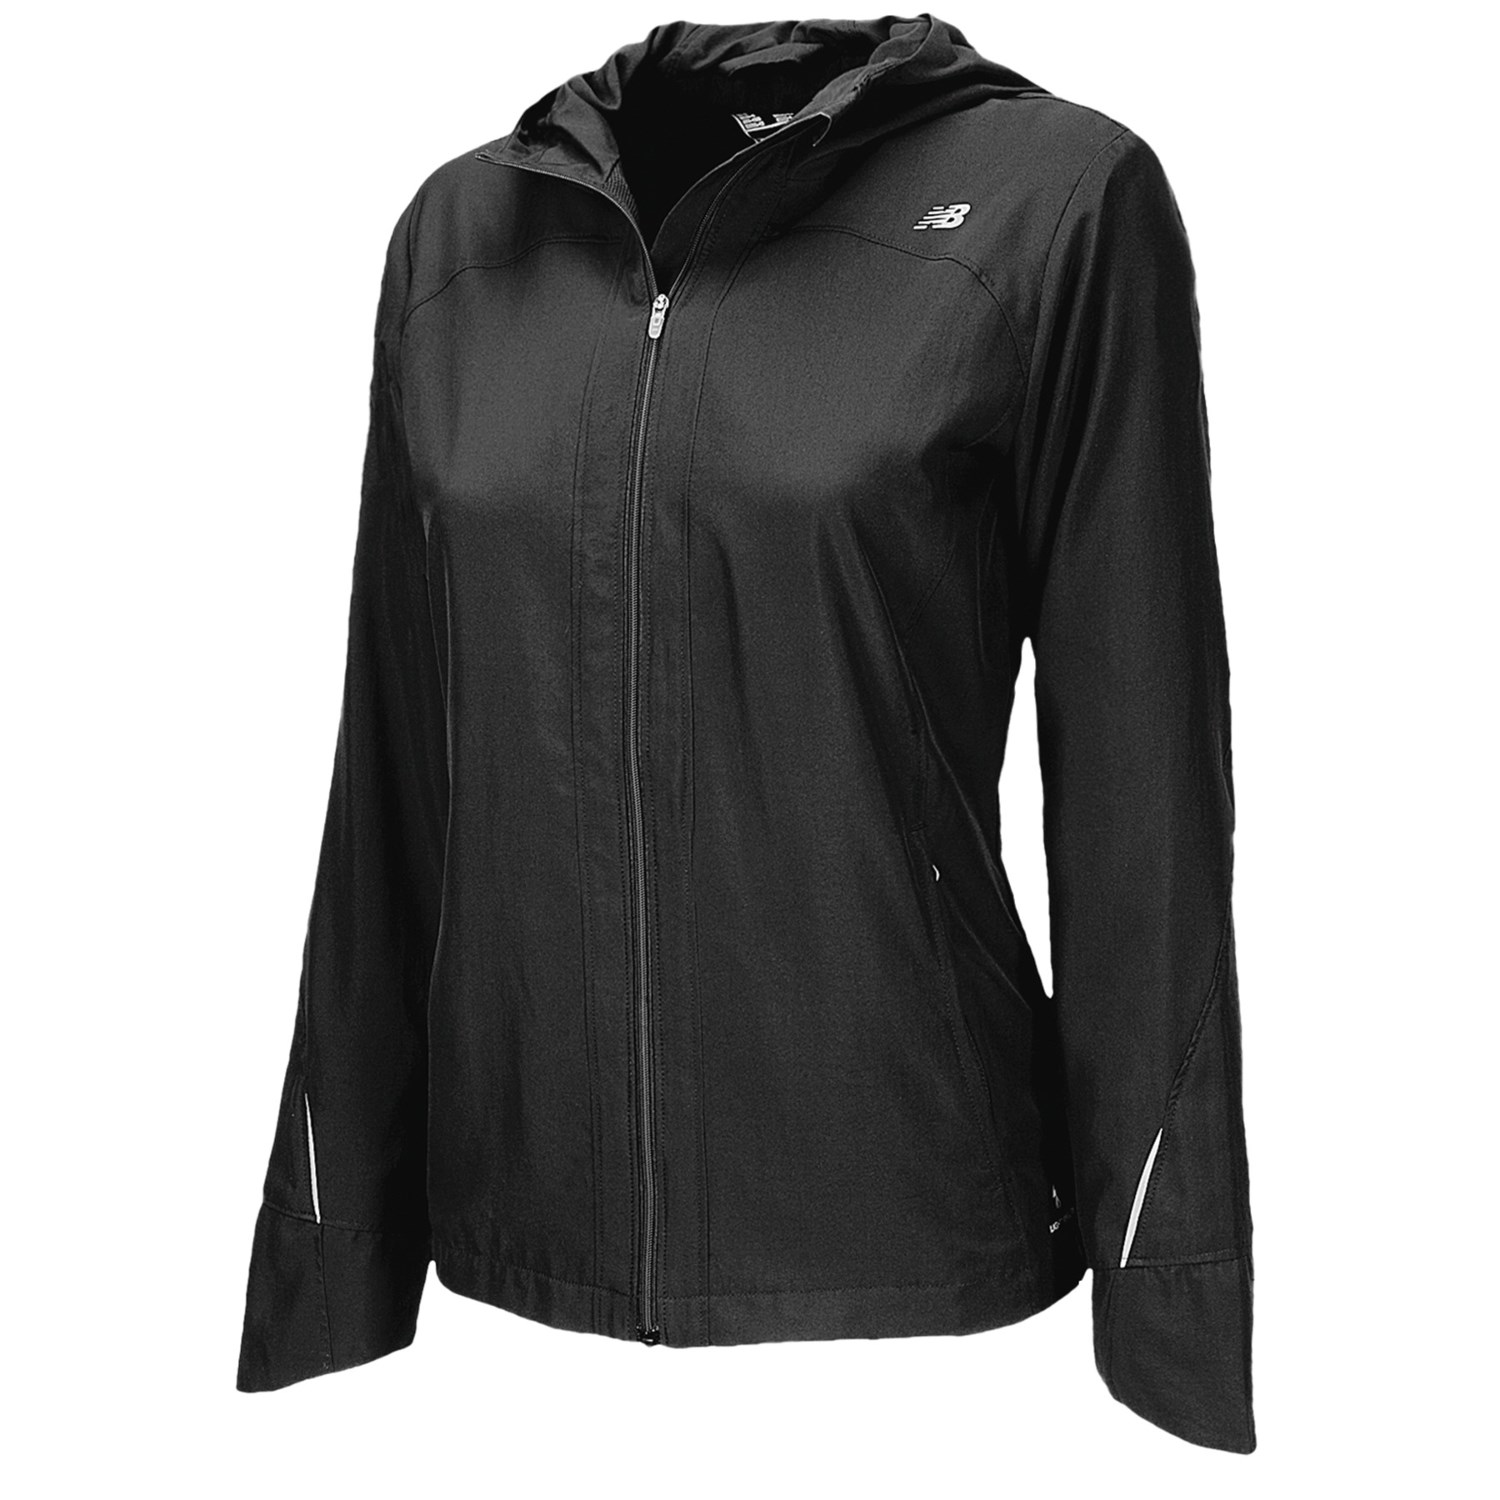 new balance sequence hooded jacket for women 6327y. Black Bedroom Furniture Sets. Home Design Ideas